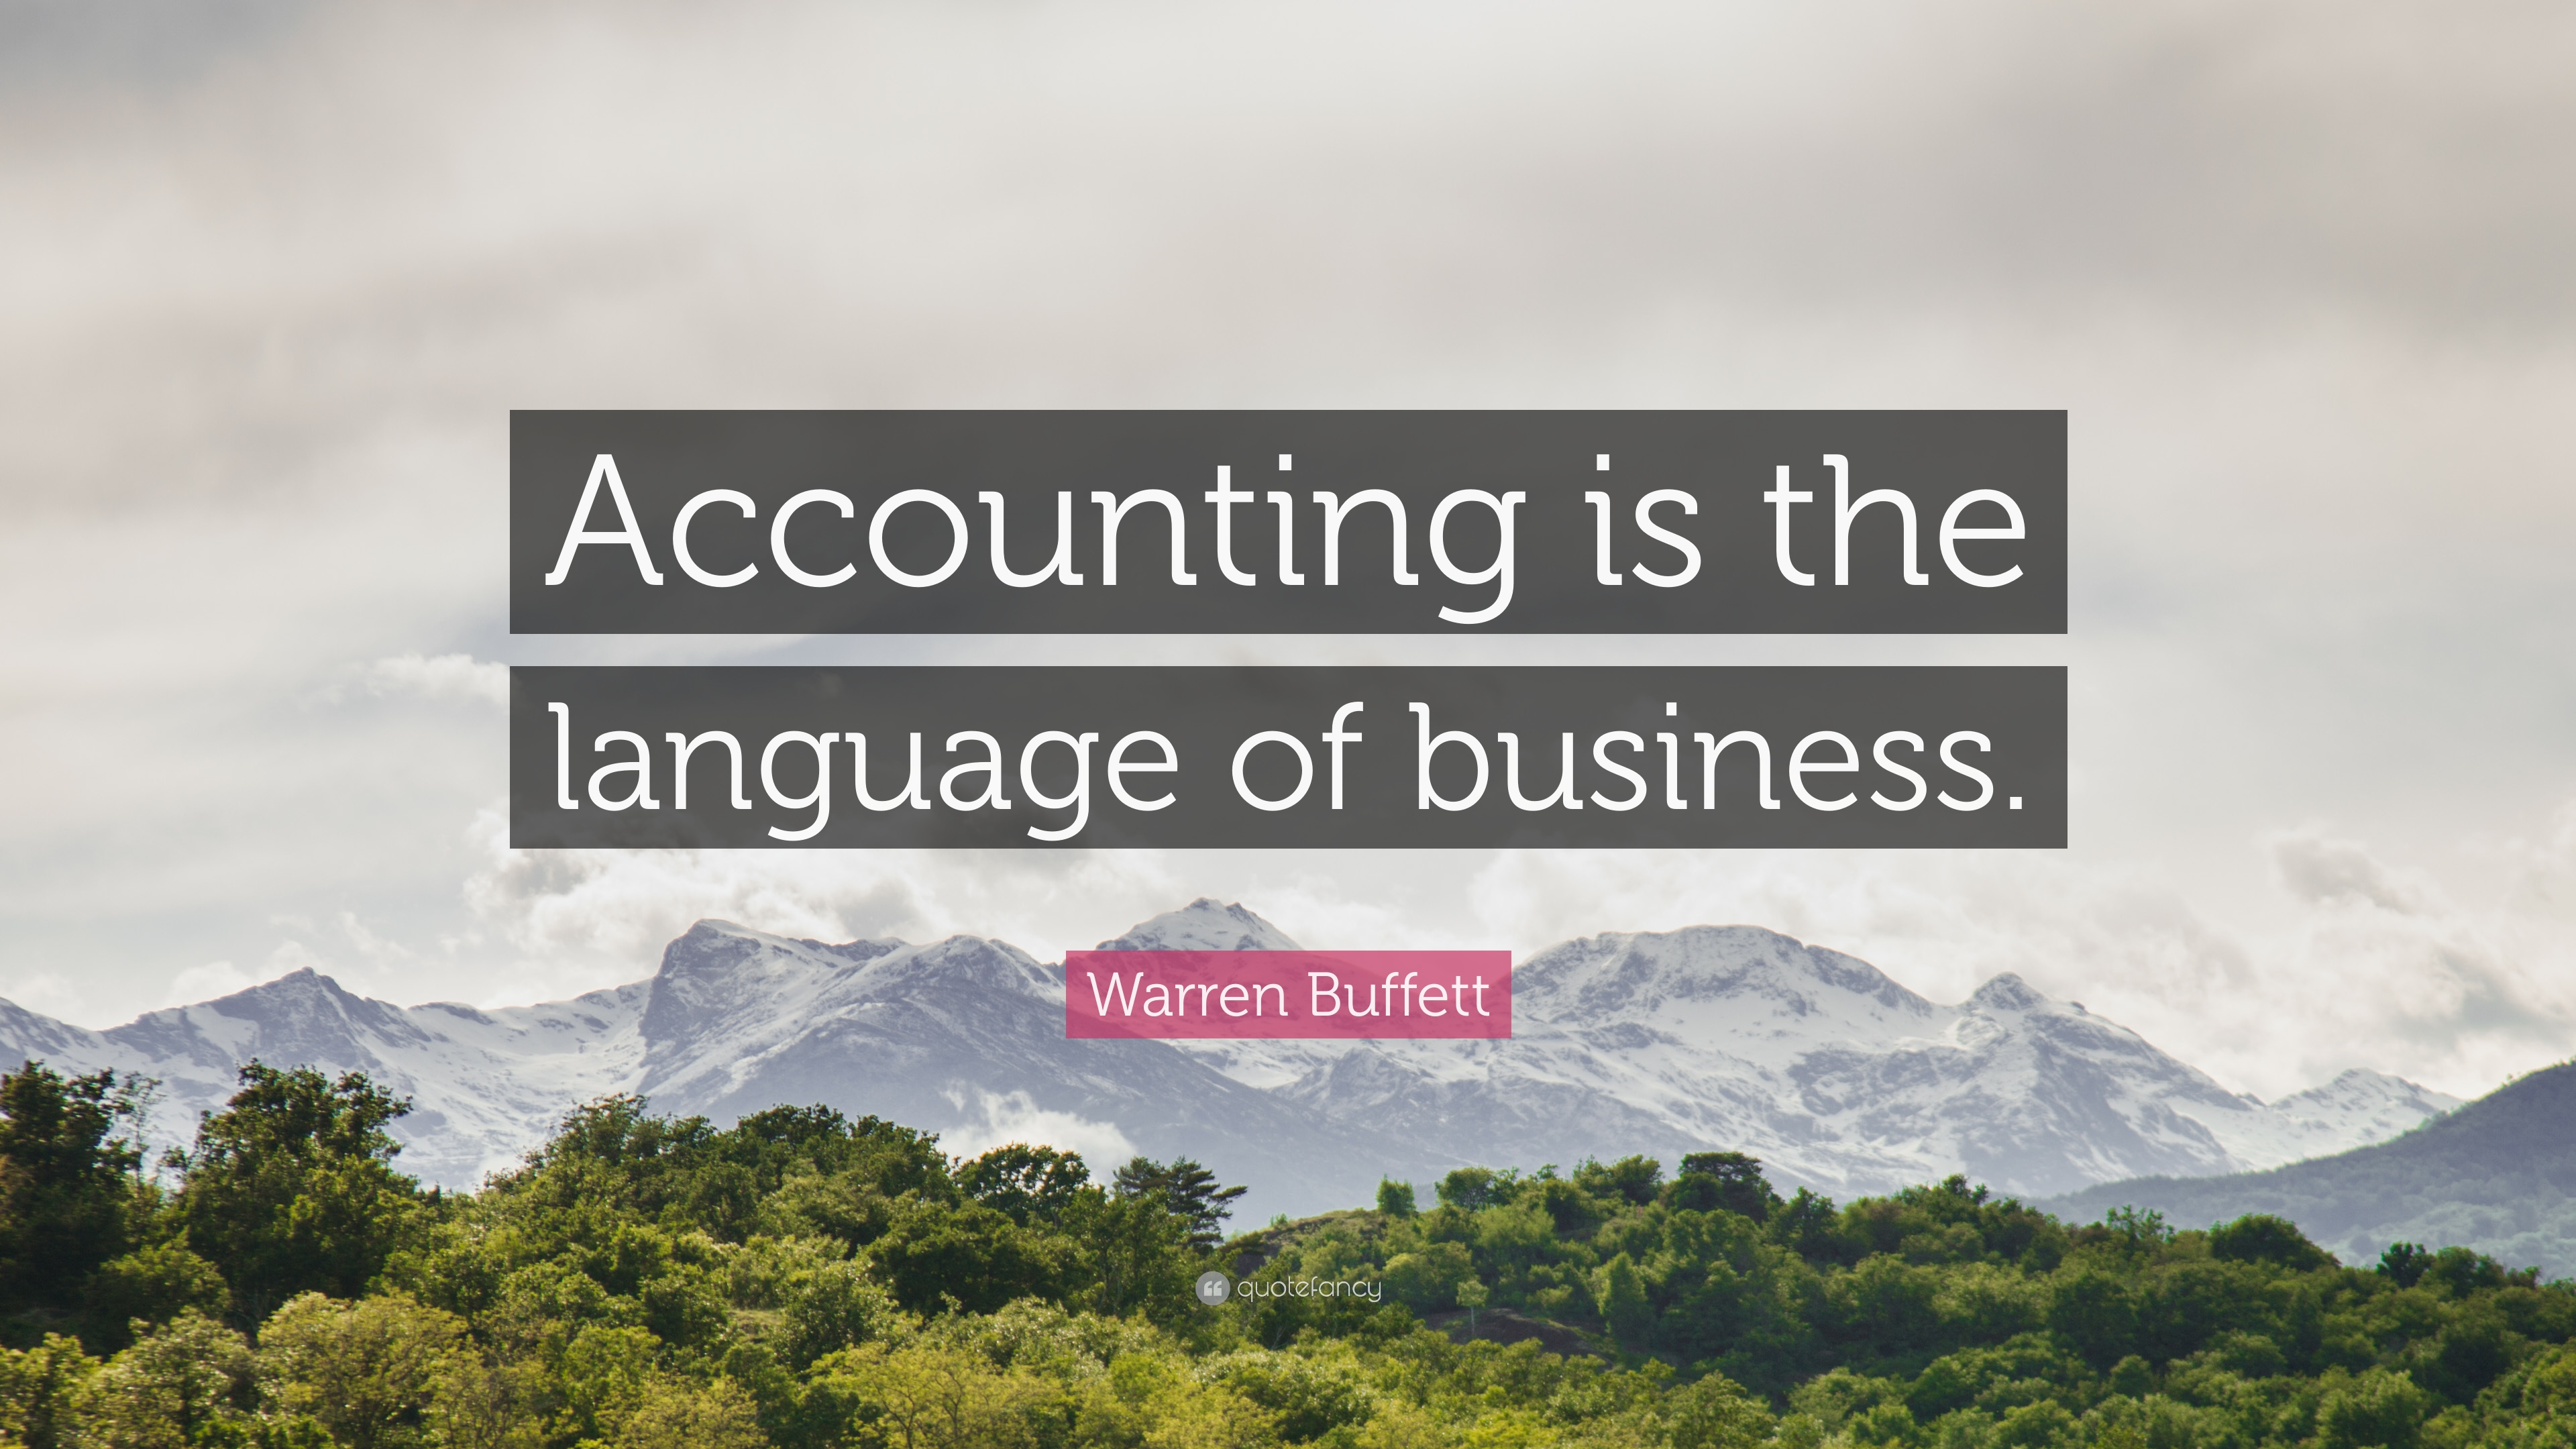 accounting is dubbed language of business Accounting is the language of business for several reasons without accounting, business would be kayos there would not be any indicators of how well a business was doing other than the cash on hand at that given time however, that information would be short sighted.